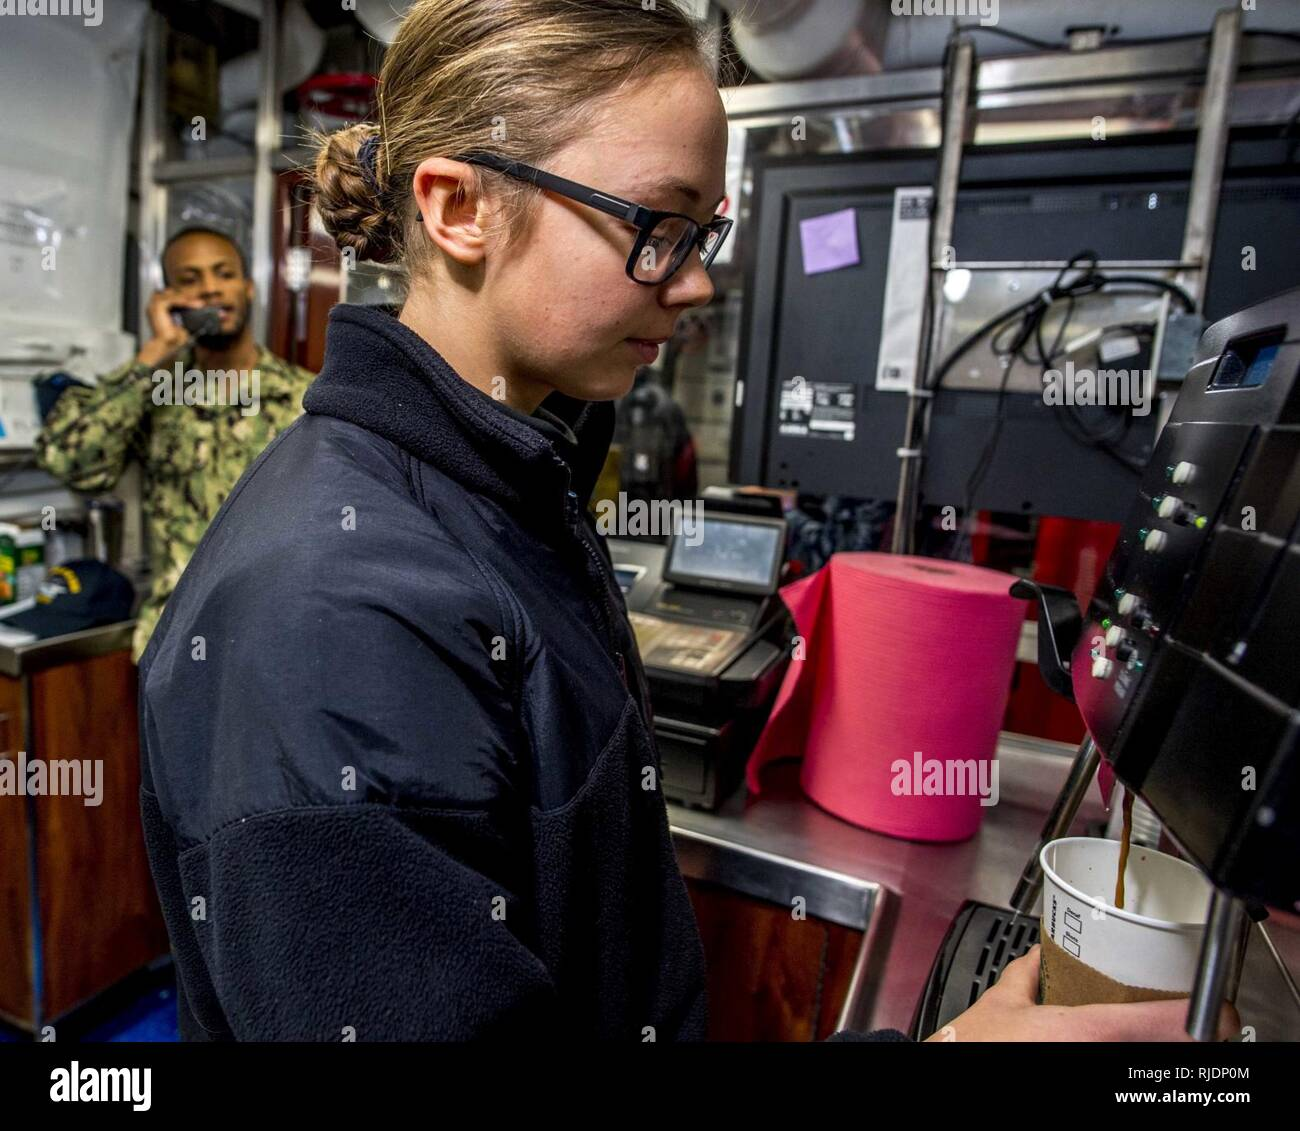 NORFOLK, Va (Jan. 22, 2018) Aviation Ordnanceman Airman Sarah Boone operates an espresso machine aboard the aircraft carrier USS George H.W. Bush (CVN 77). The ship is in port in Norfolk, Virginia, conducting routine maintenance in preparation for the Board of Inspection and Survey (INSURV). Stock Photo